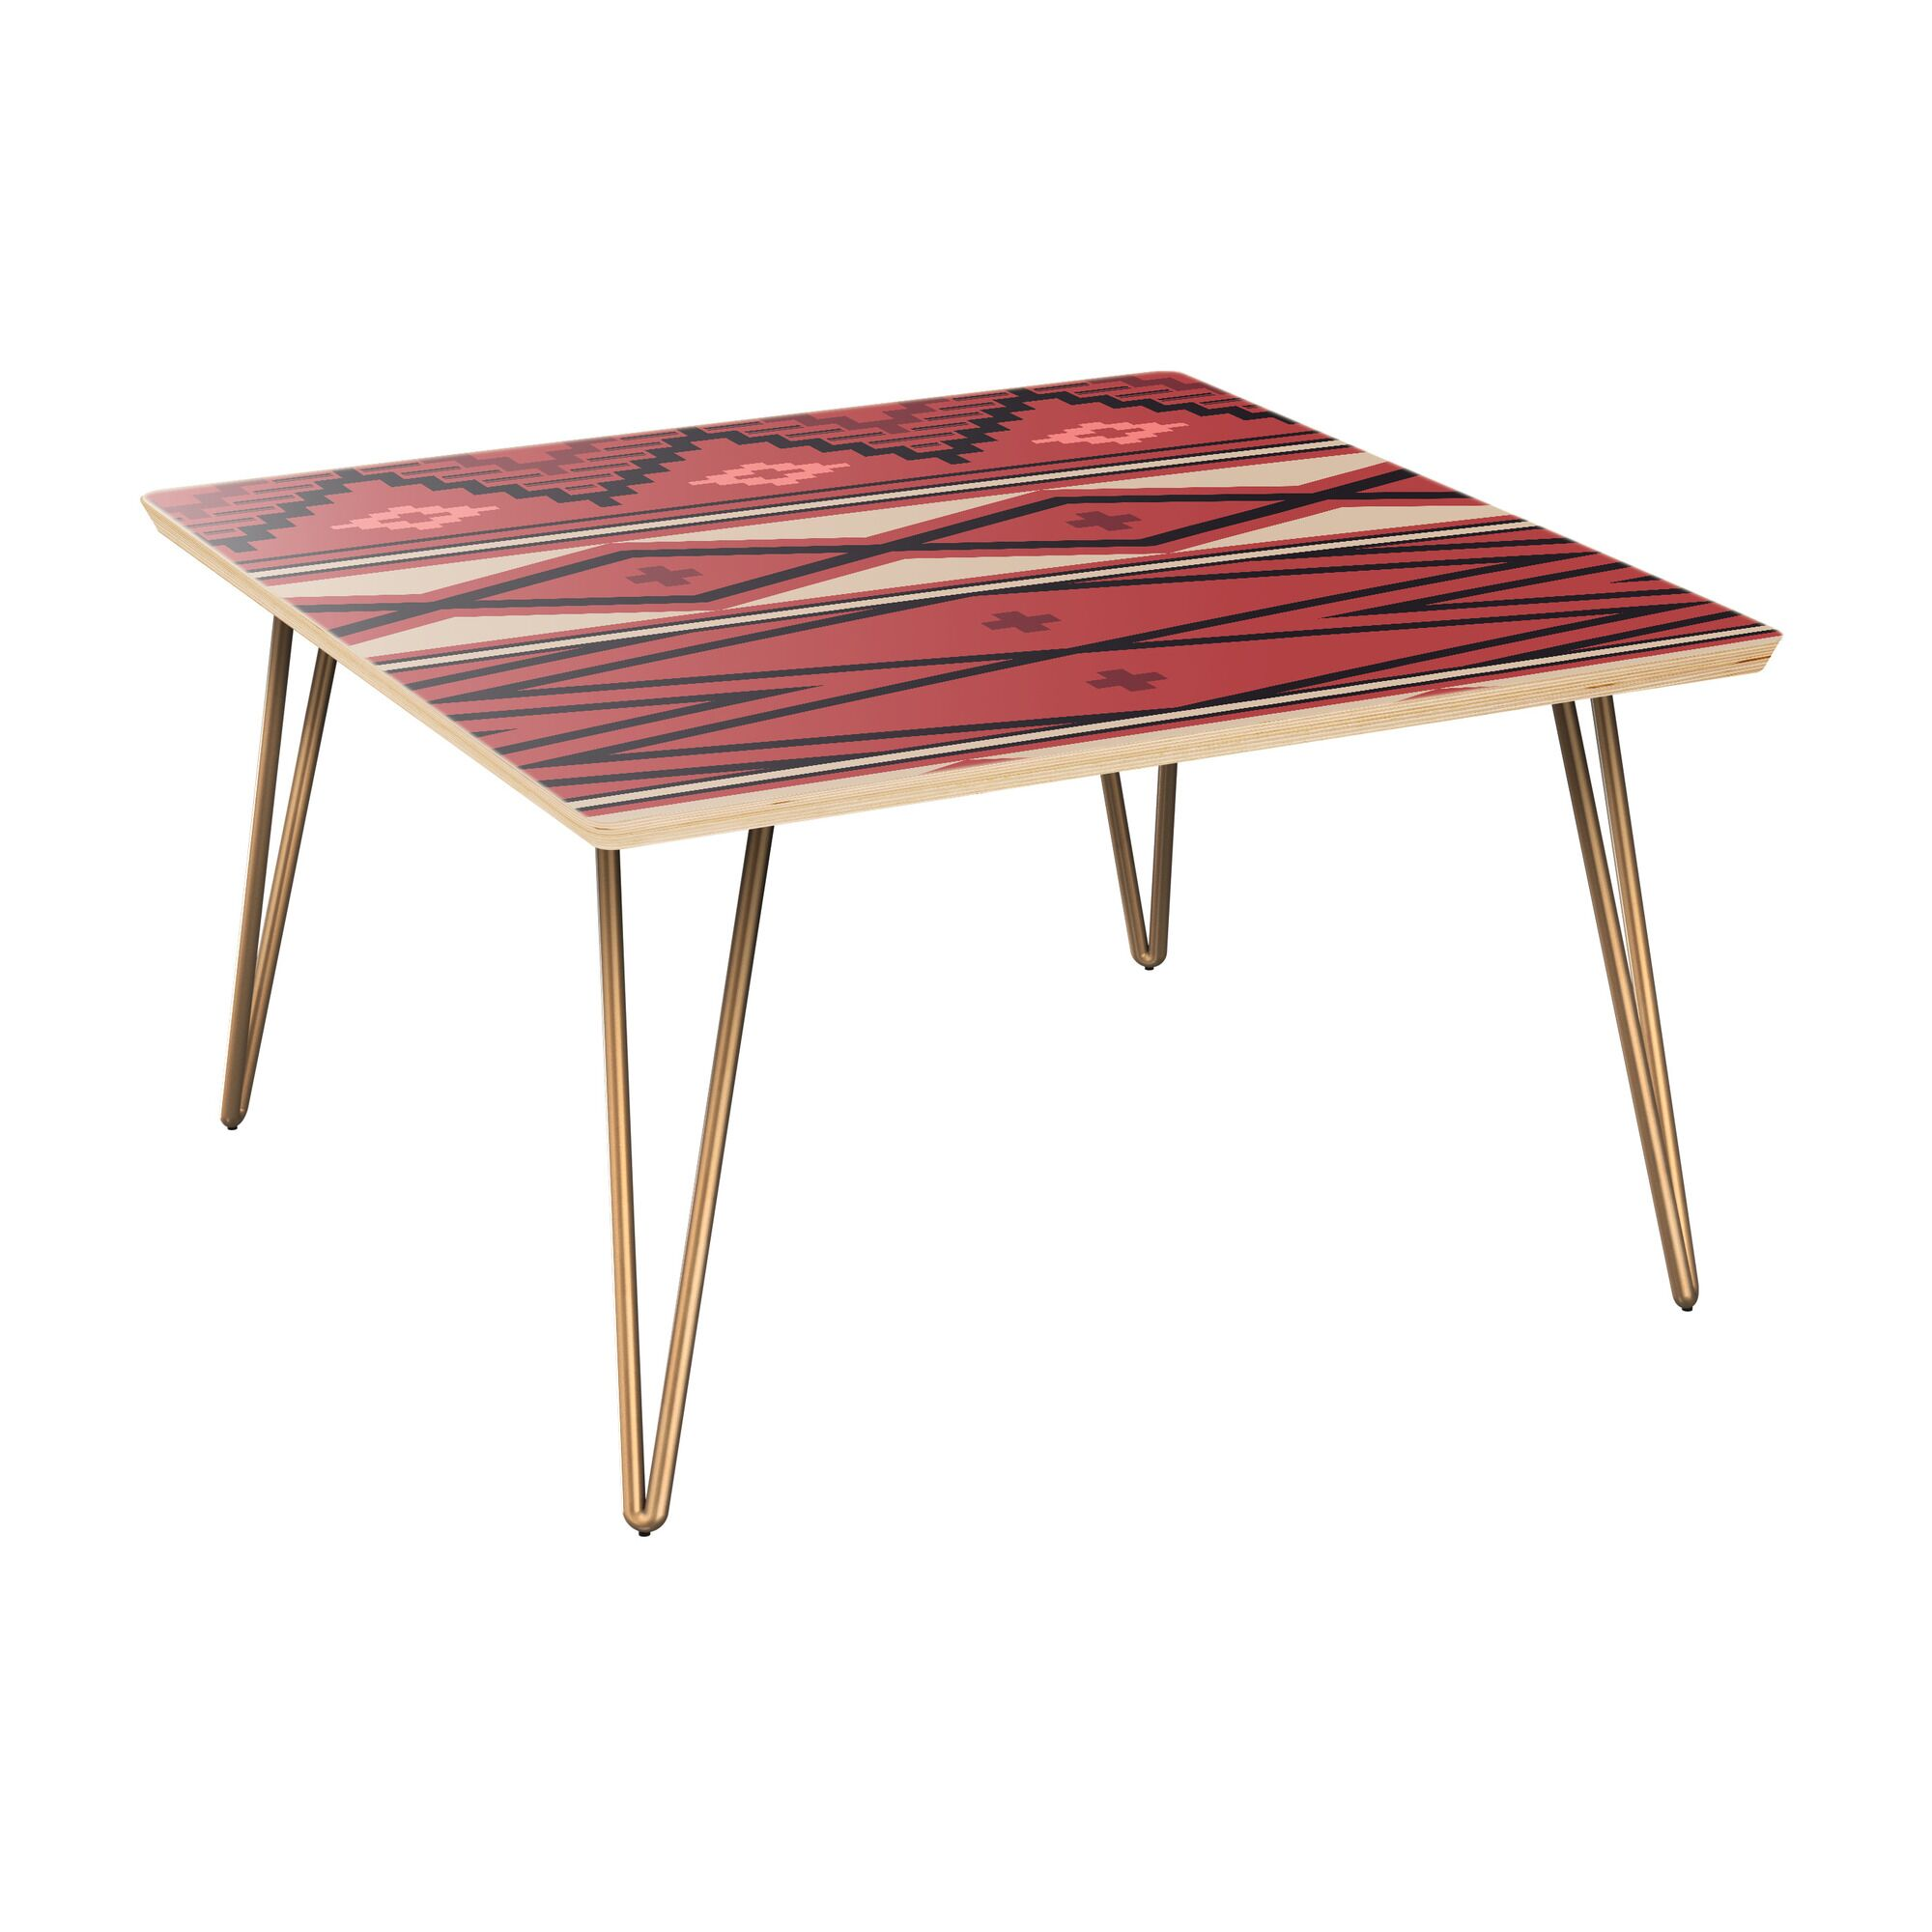 Hollowell Coffee Table Table Top Boarder Color: Natural, Table Base Color: Brass, Table Top Color: Red